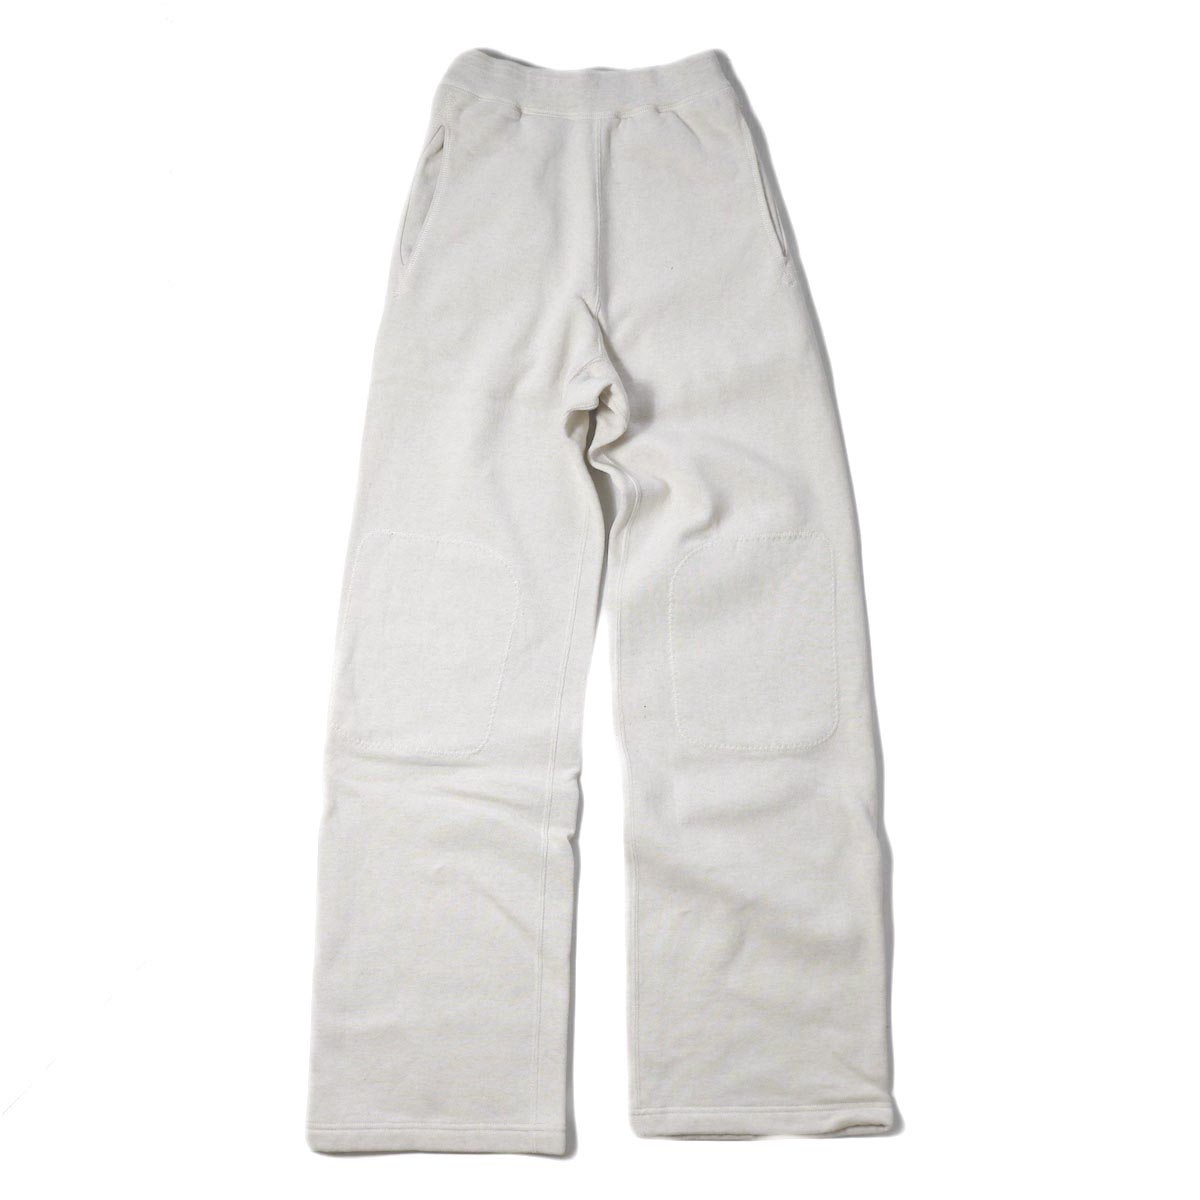 FUMIKA UCHIDA / DOUBLE KNEE SWEAT PANTS